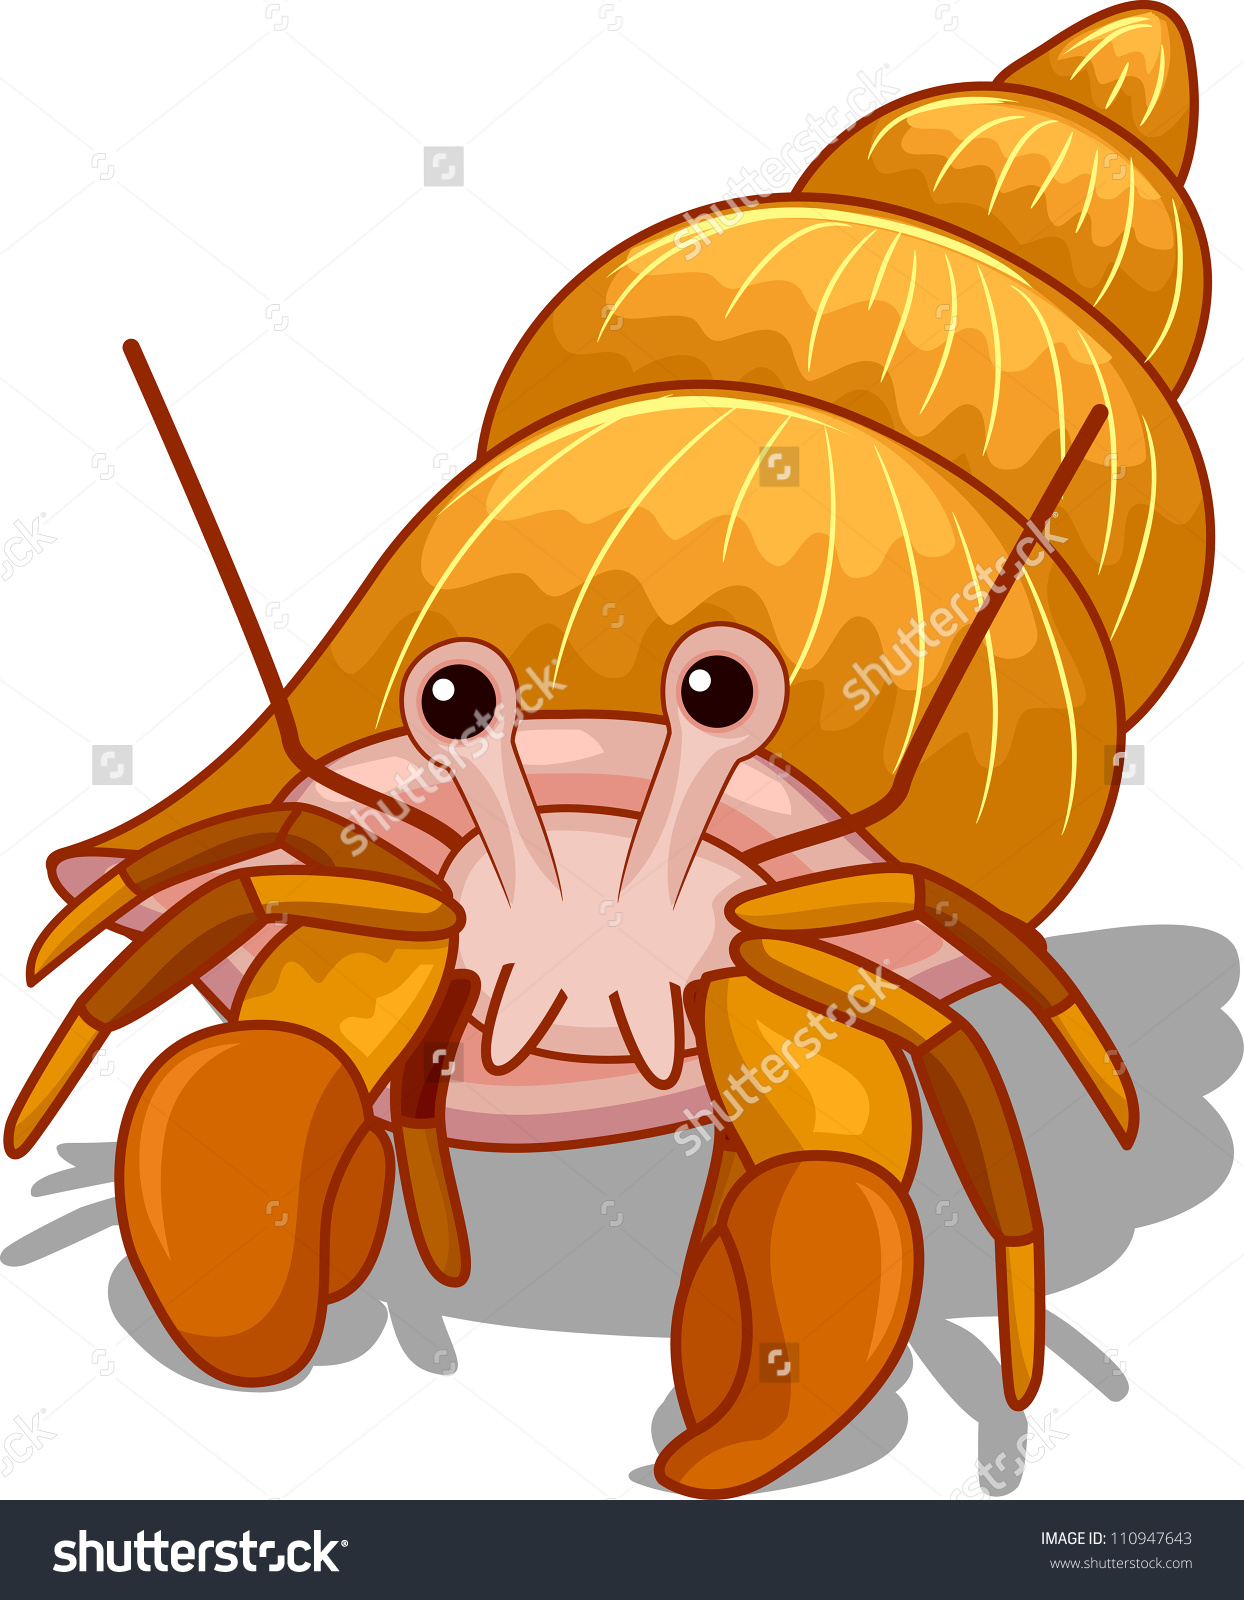 Illustration Golden Hermit Crab Head Exposed Stock Vector.